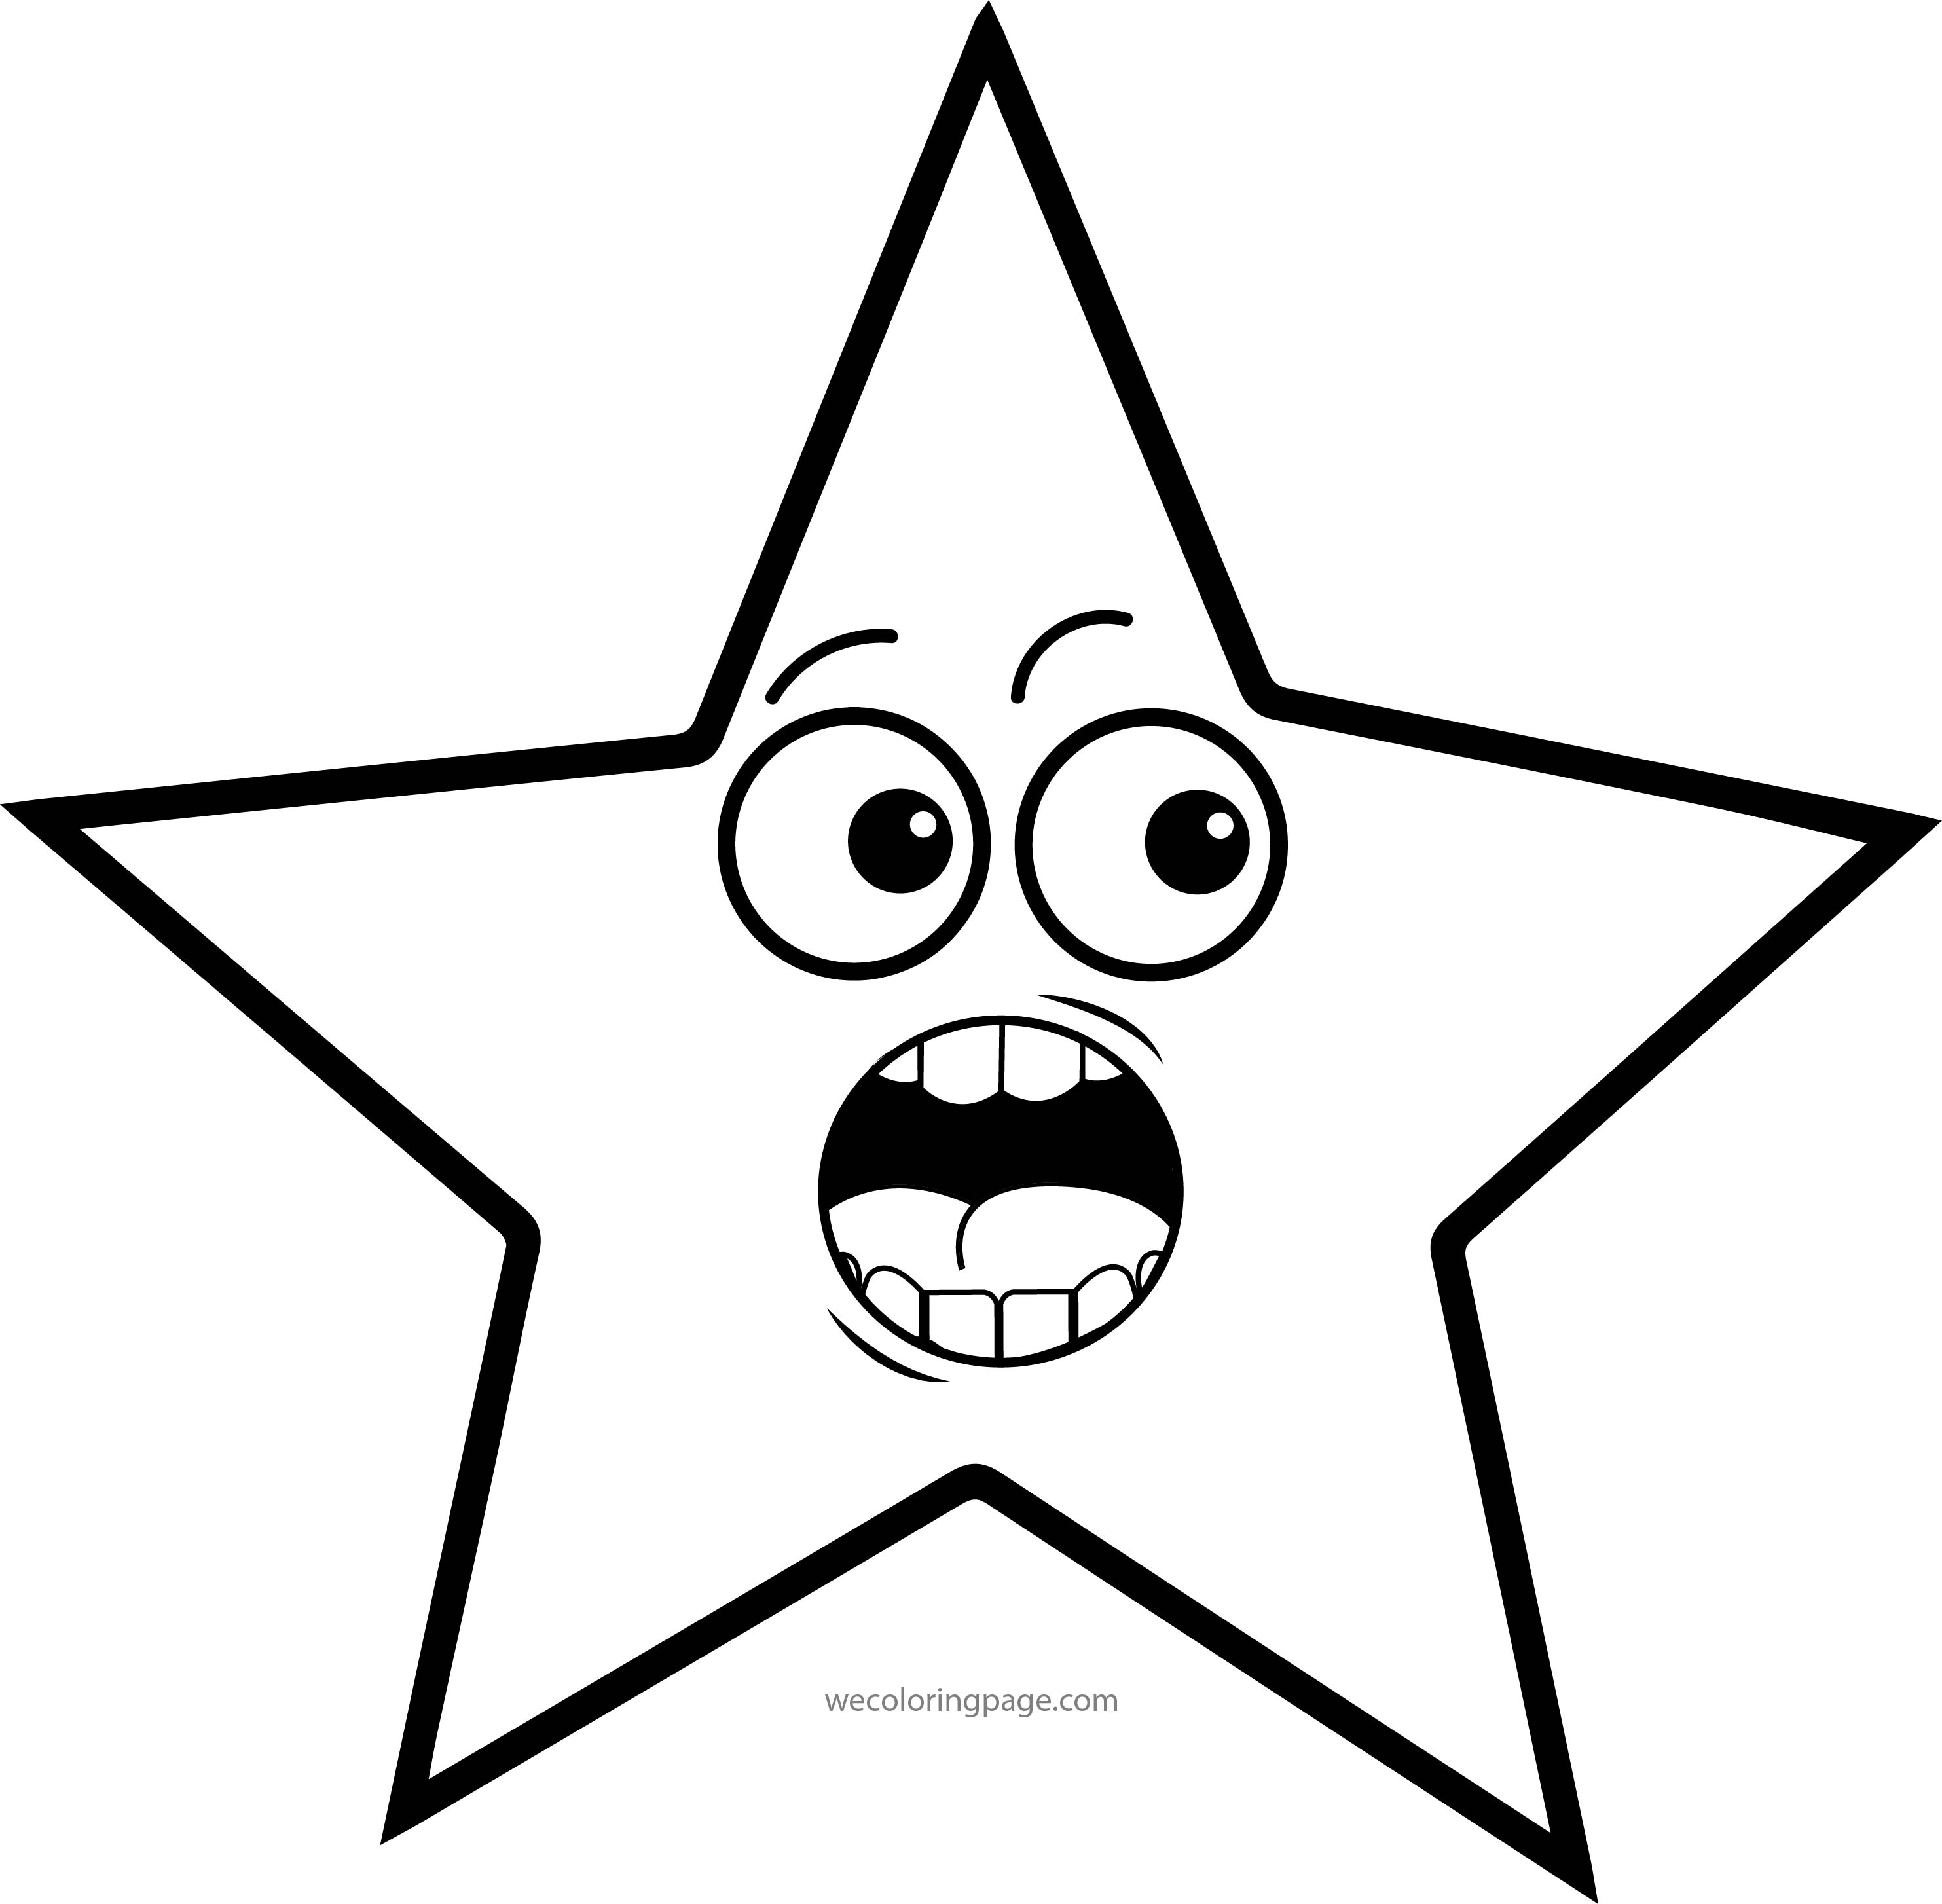 stars coloring page free printable star coloring pages stars page coloring